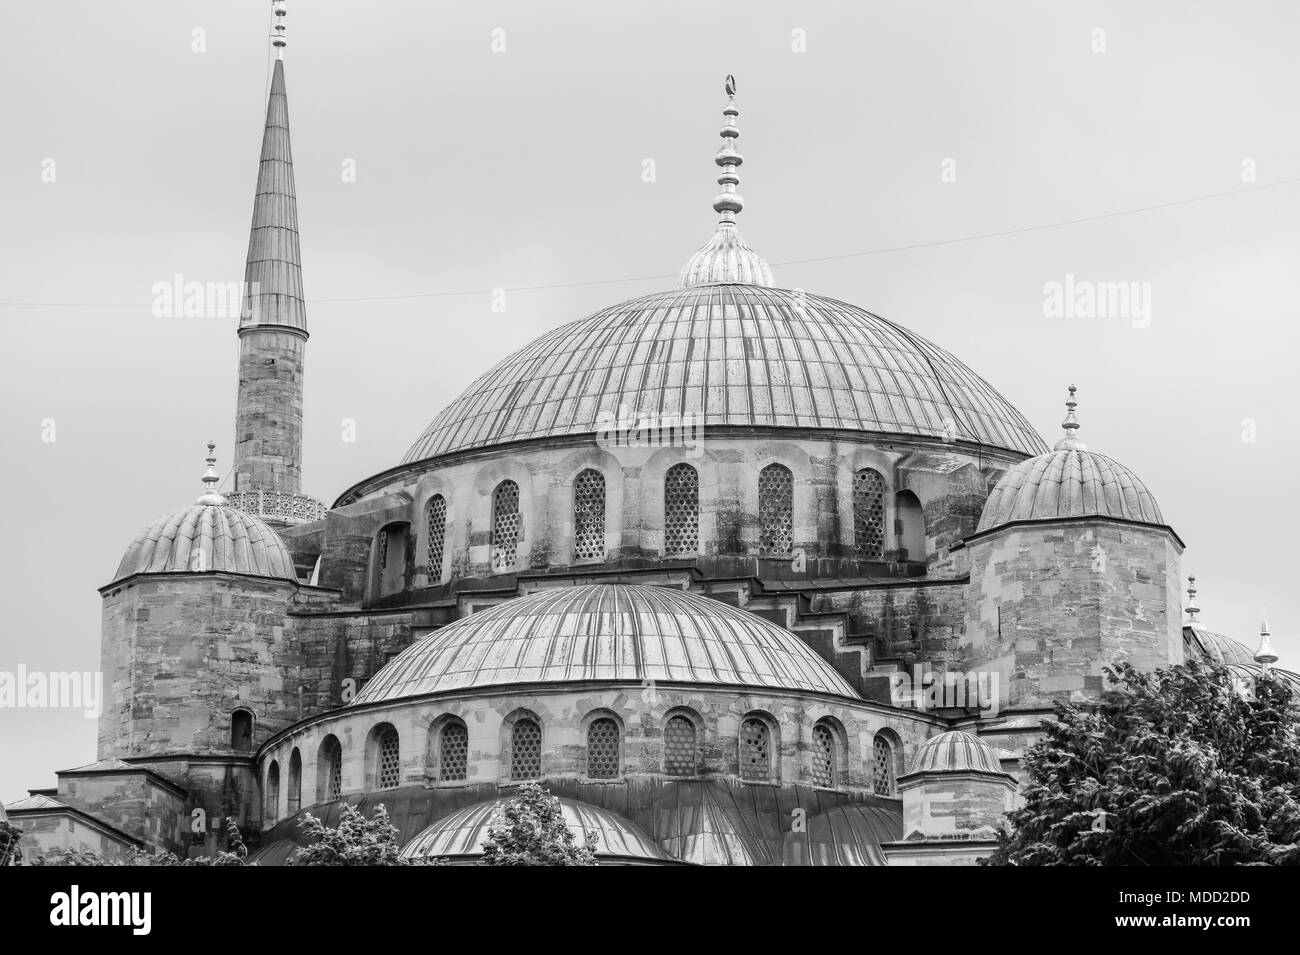 The Blue Mosque, (Sultanahmet Camii), Istanbul, Turkey. Monochromatic picture. - Stock Image